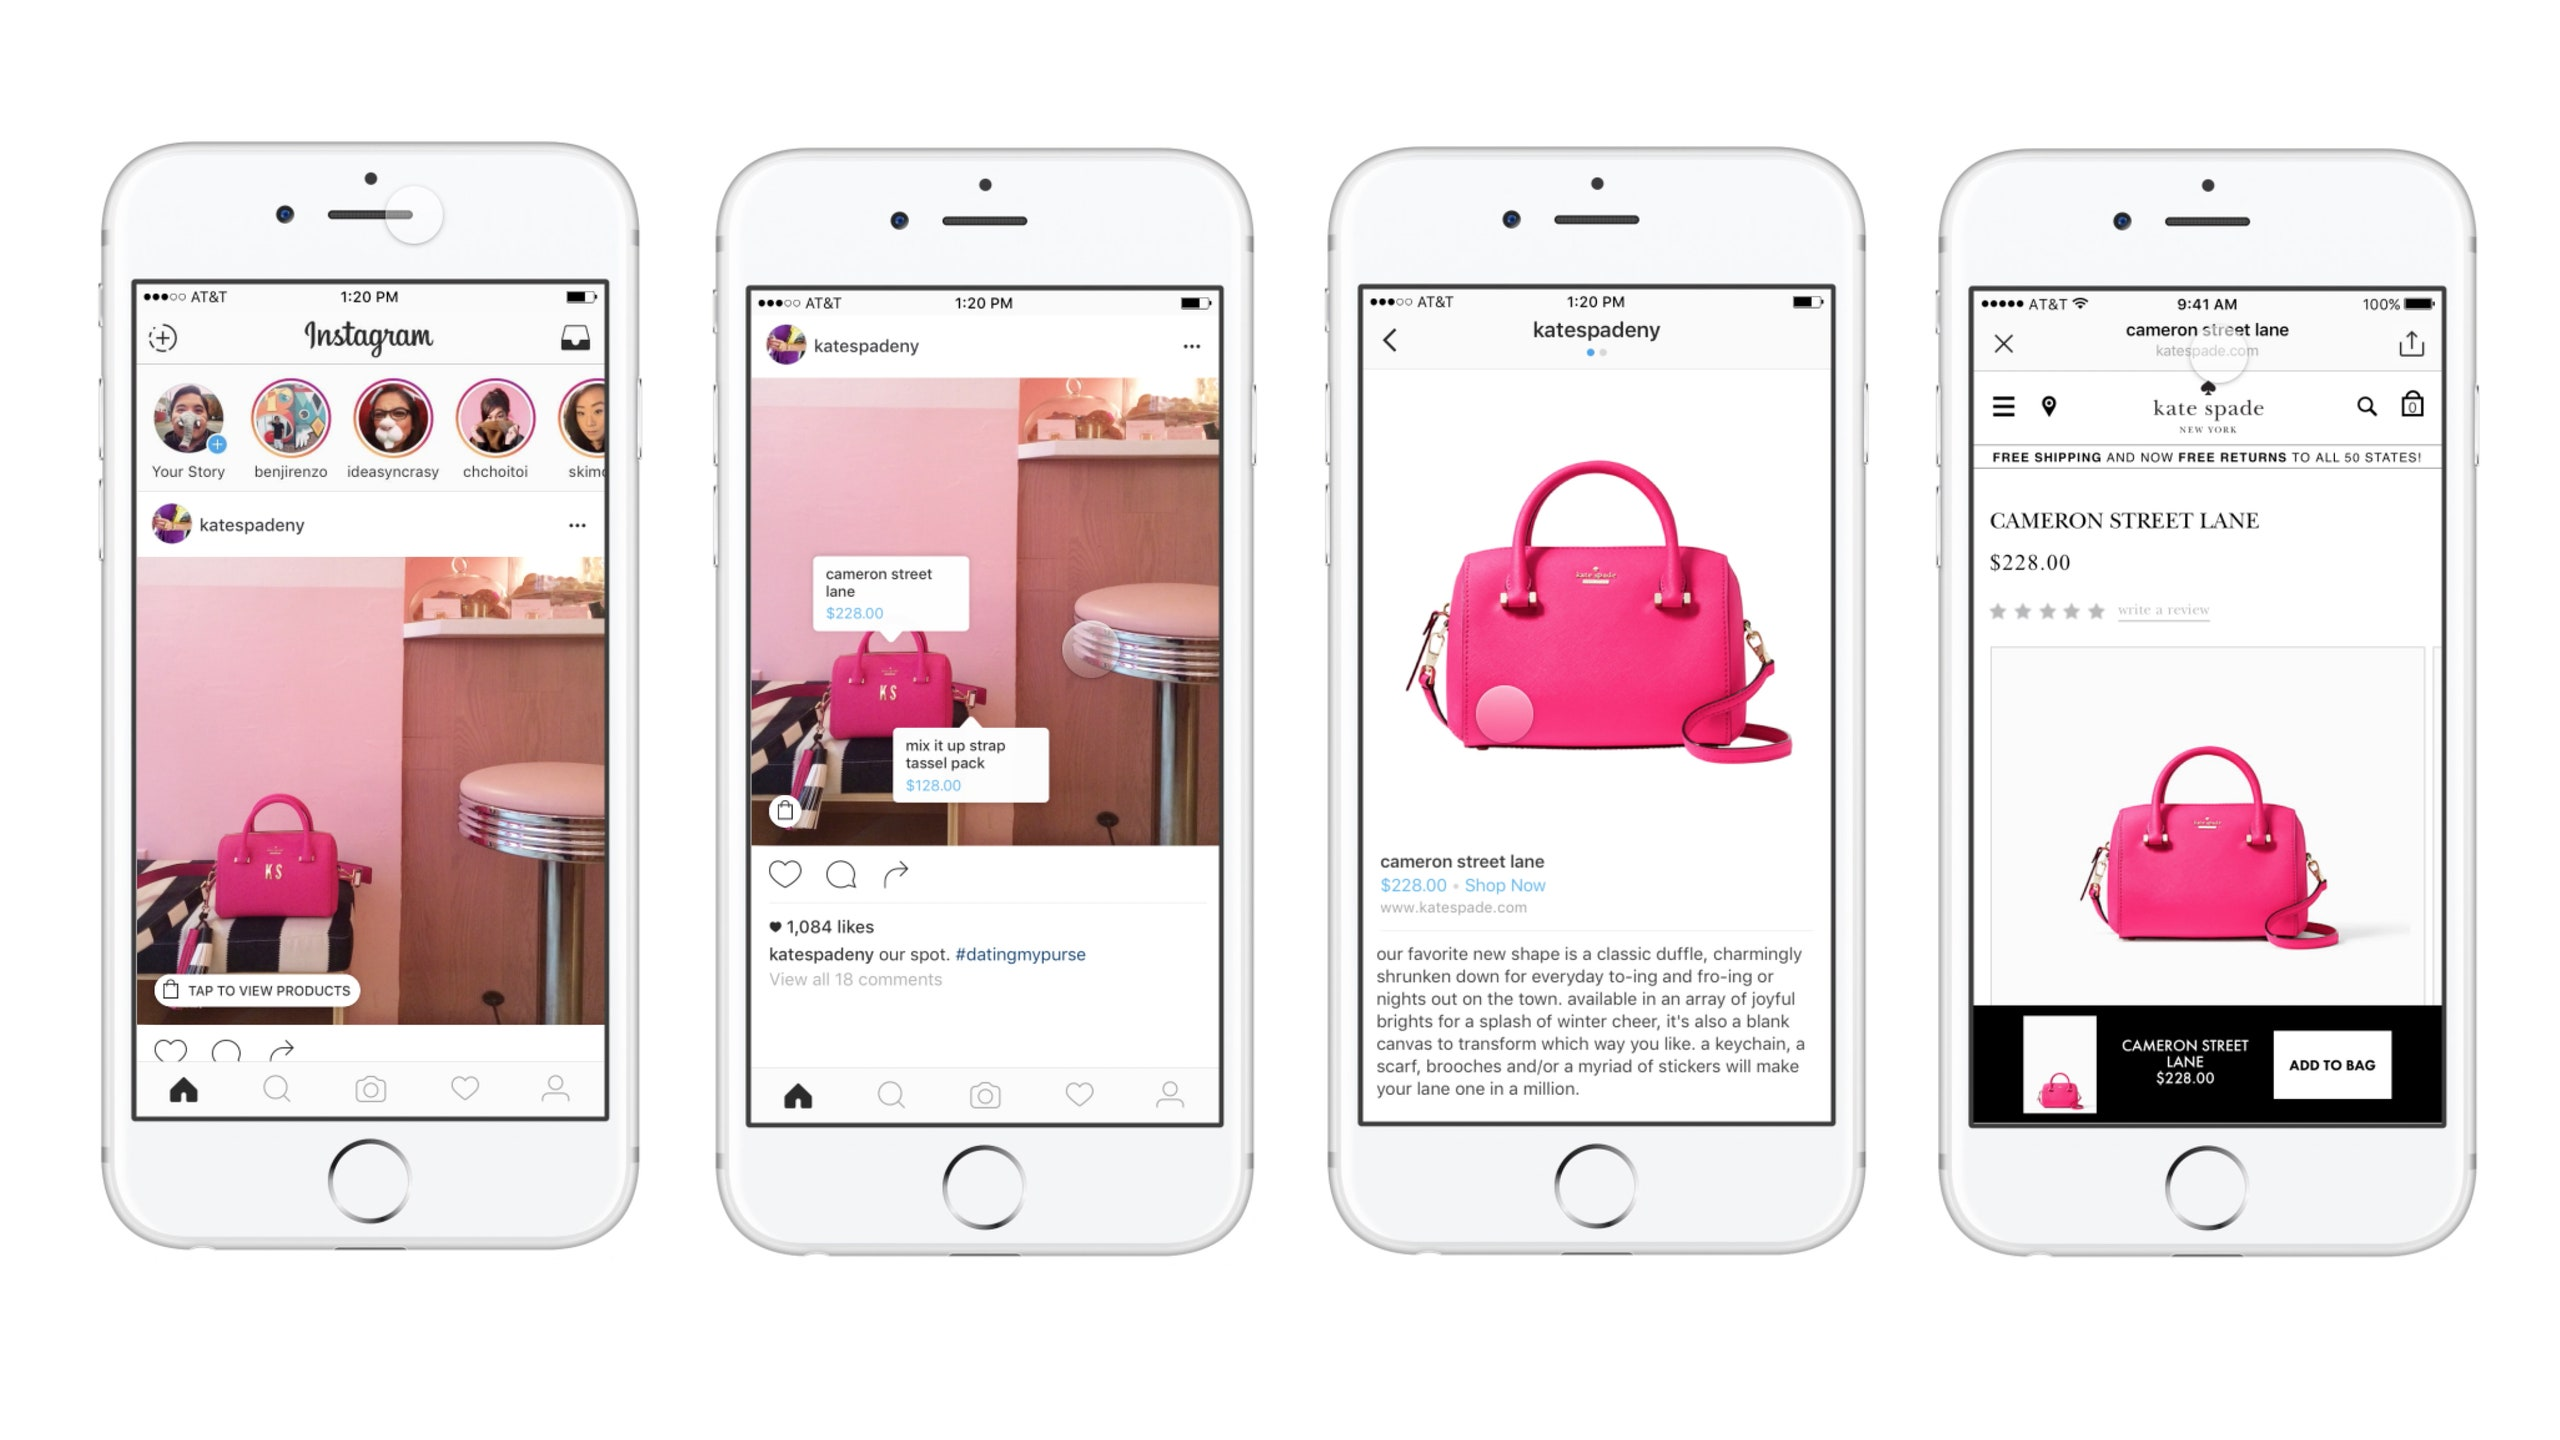 Instagram Shopping IG introduces new feature for all the shopaholics